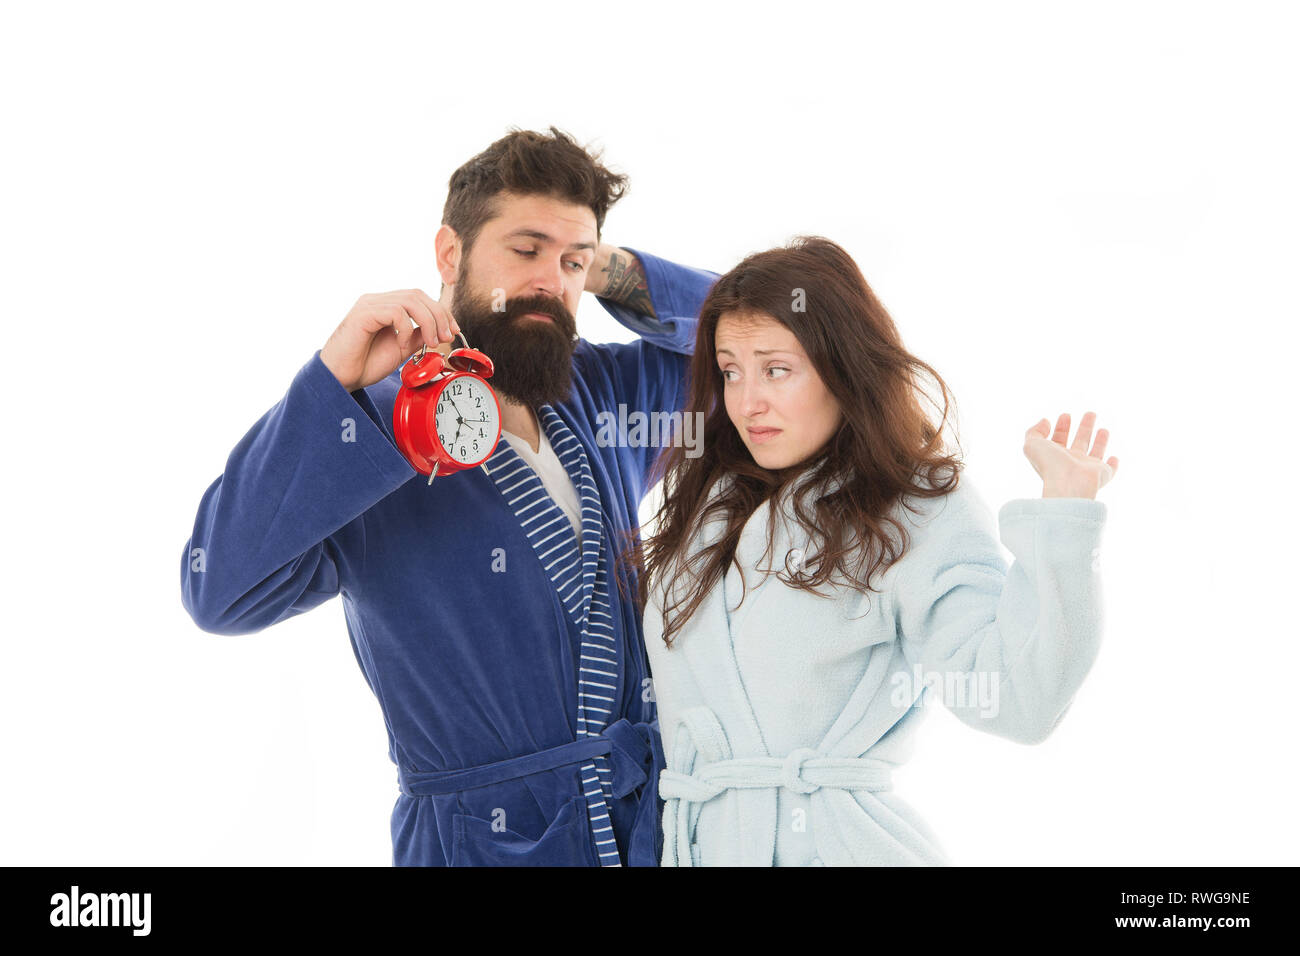 Family morning. Perfect morning concept. Family woke up on time. Couple in love young family in bathrobes stand isolated on white background. Girl with tousled hair and man with clock in hand. - Stock Image